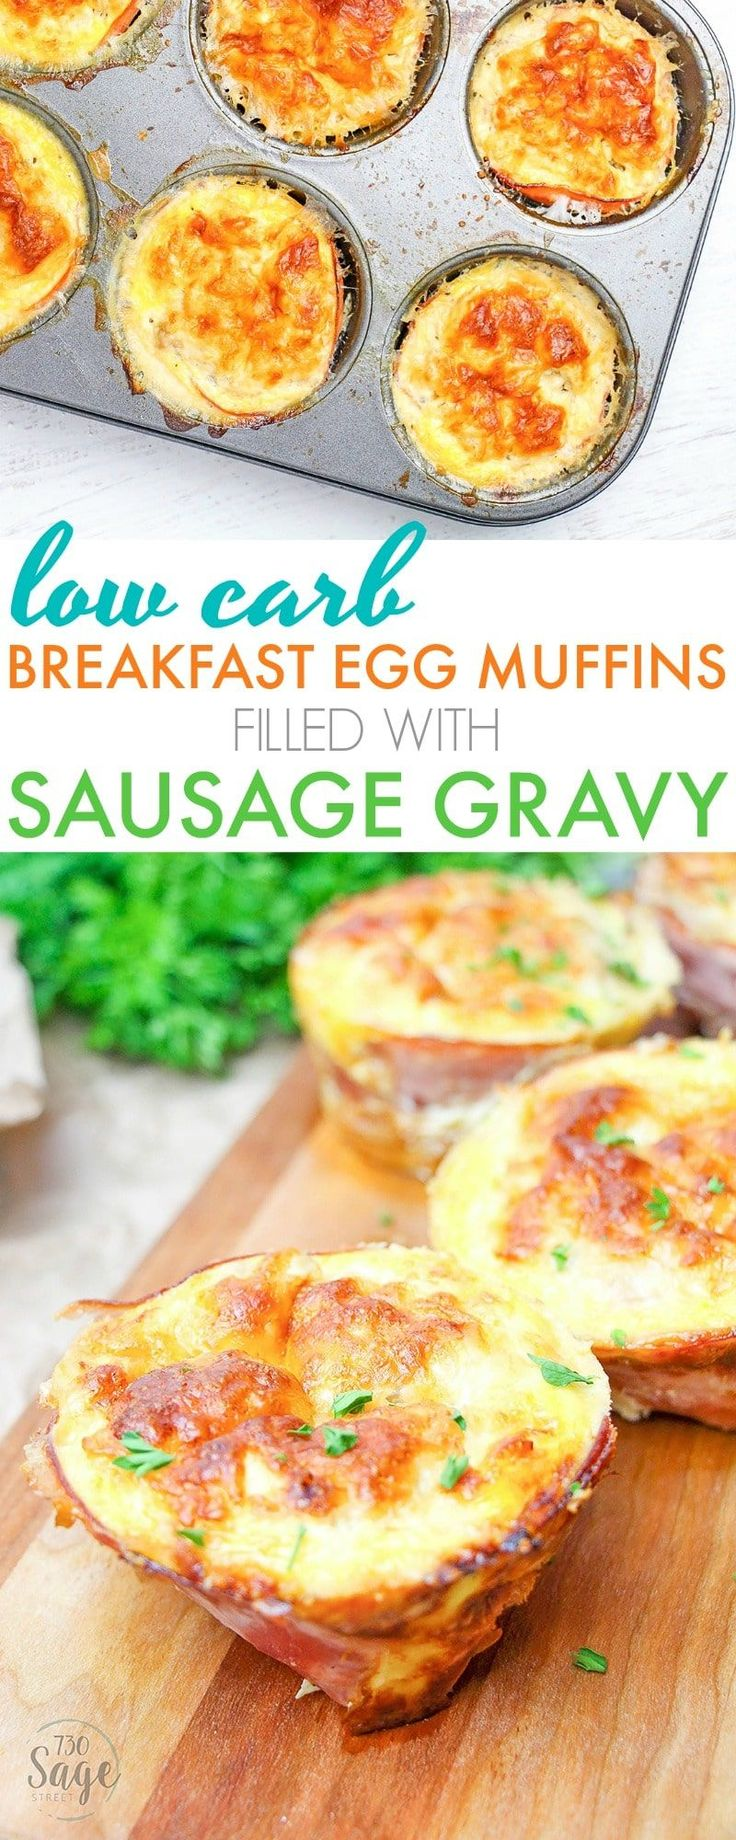 These low carb breakfast egg muffins are super easy to make and so delicious! Stuffed with yummy sausage gravy. Perfect to make ahead & reheat each morning for low carb & ketogenic diets. via @730sagestreet